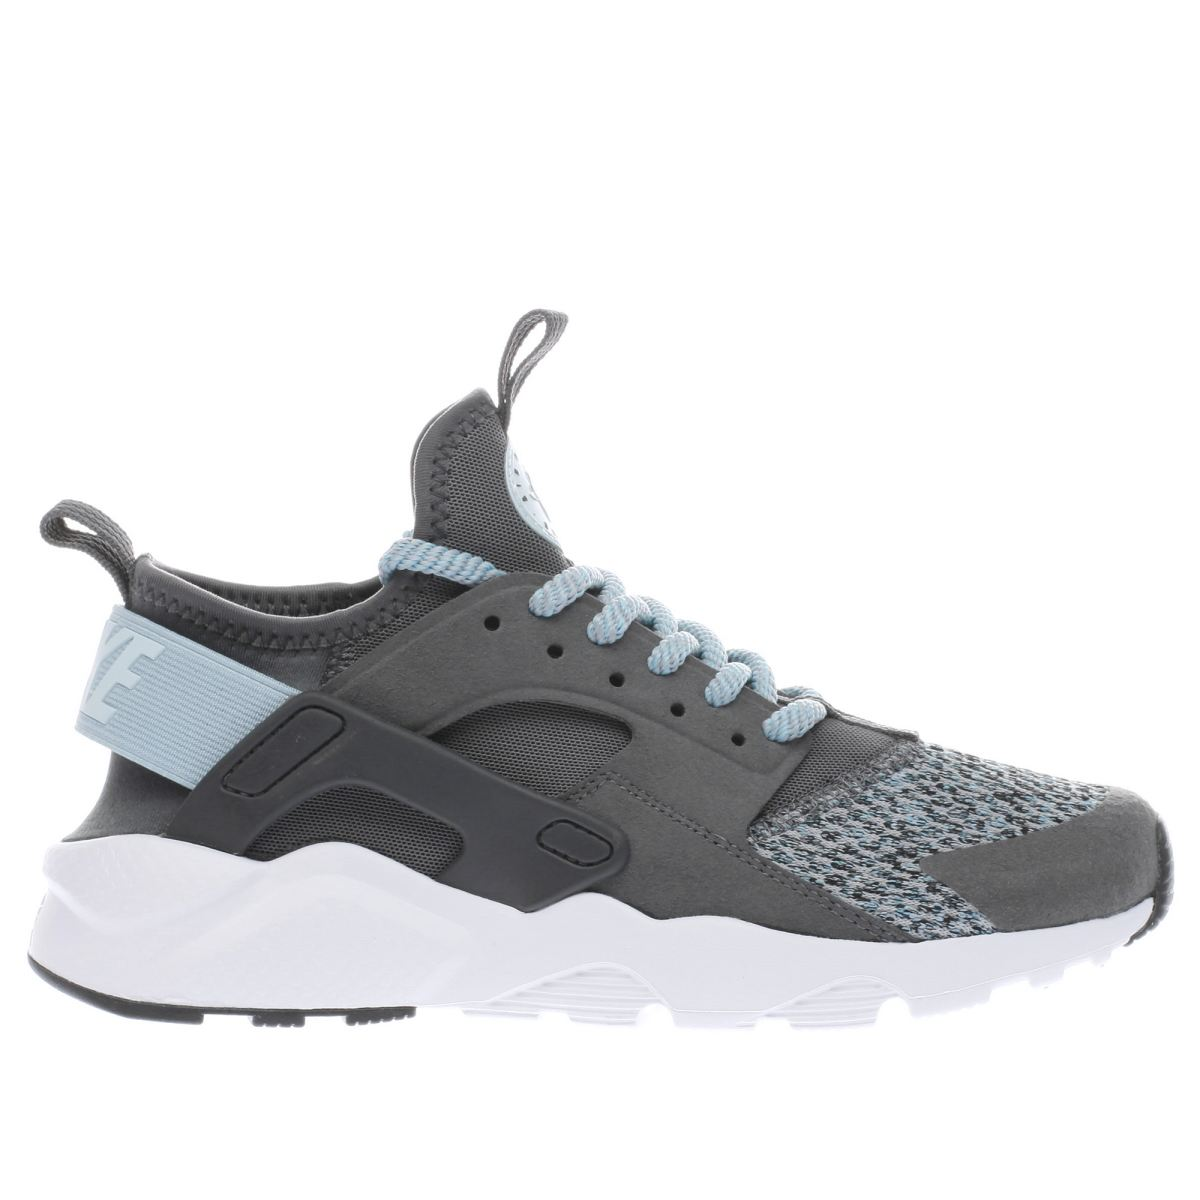 nike dark grey huarache run ultra se Girls Youth Trainers